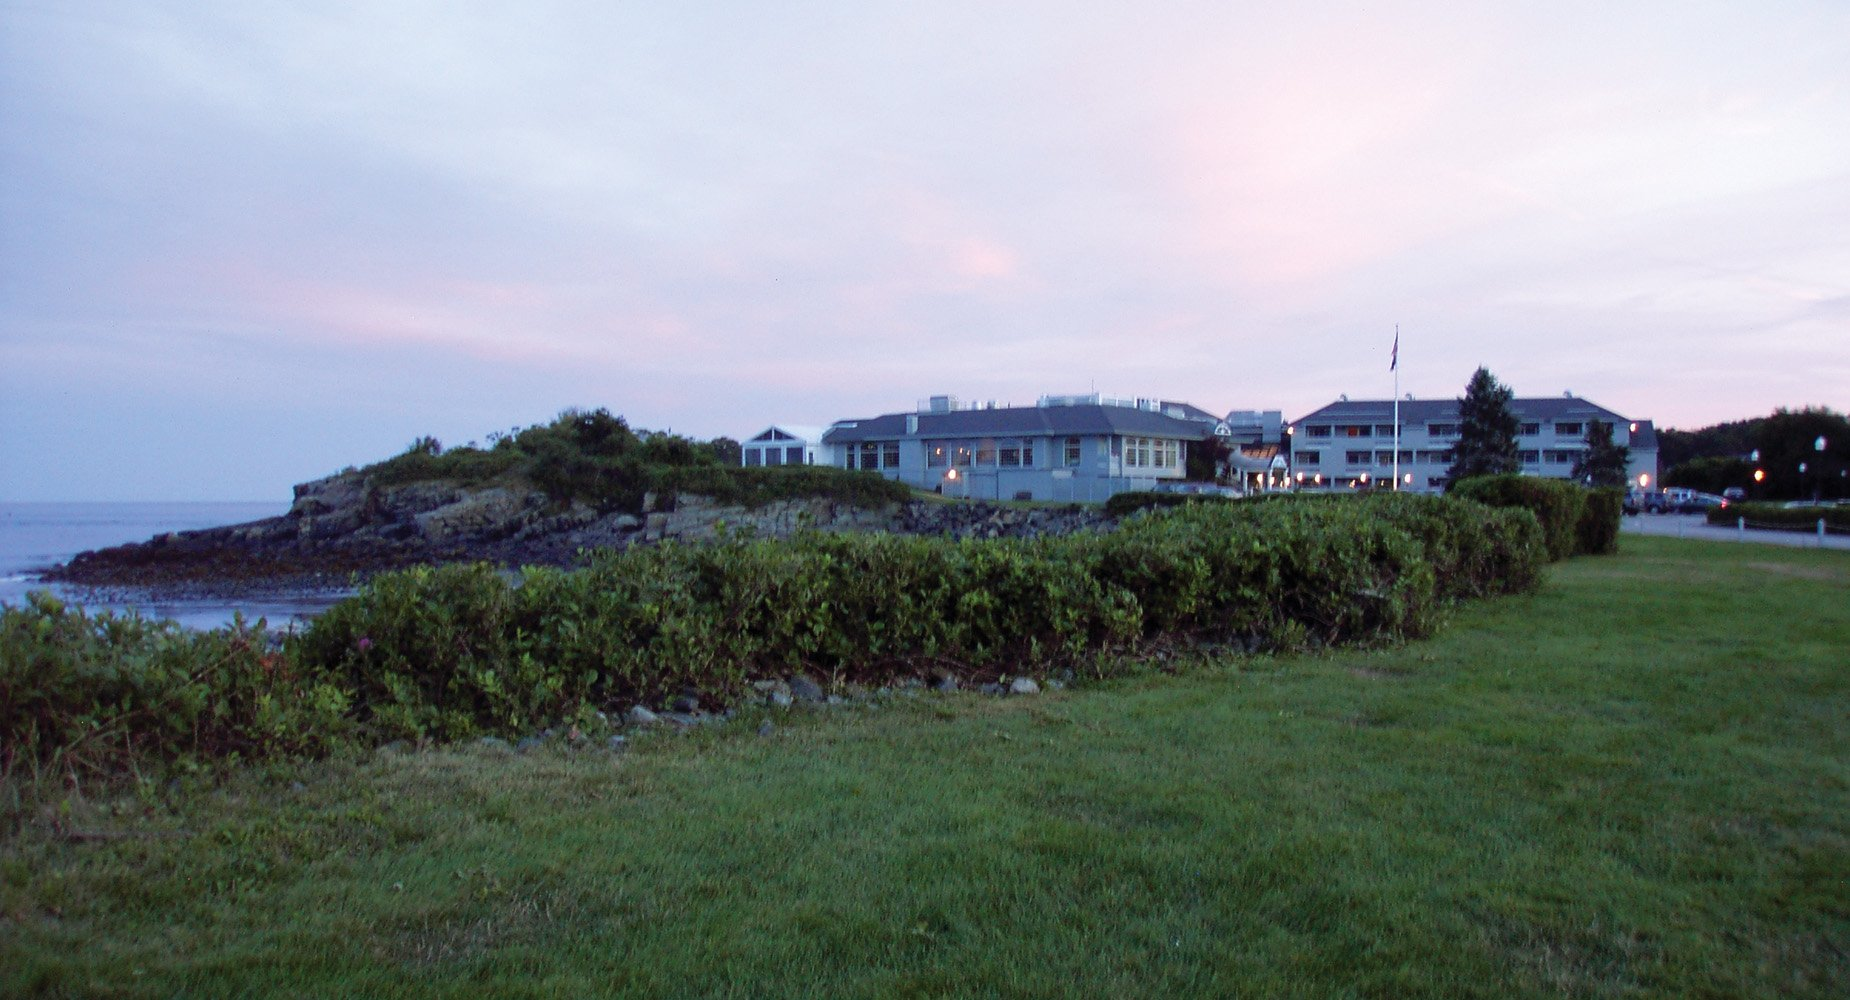 The Inn viewed across the lawn and beach.